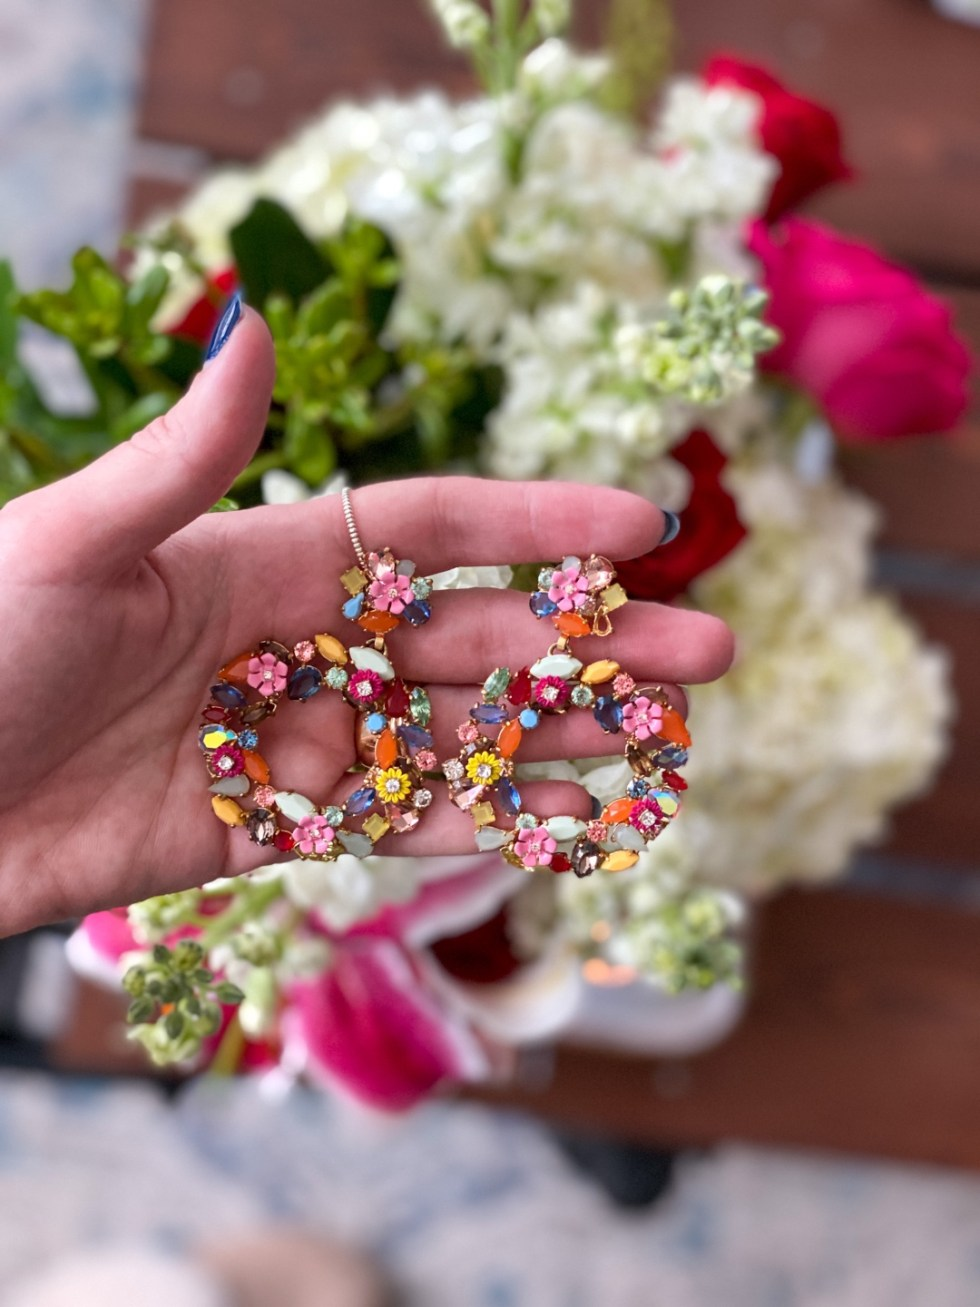 Statement Earrings that I Love - I'm Fixin' To - @imfixintoblog